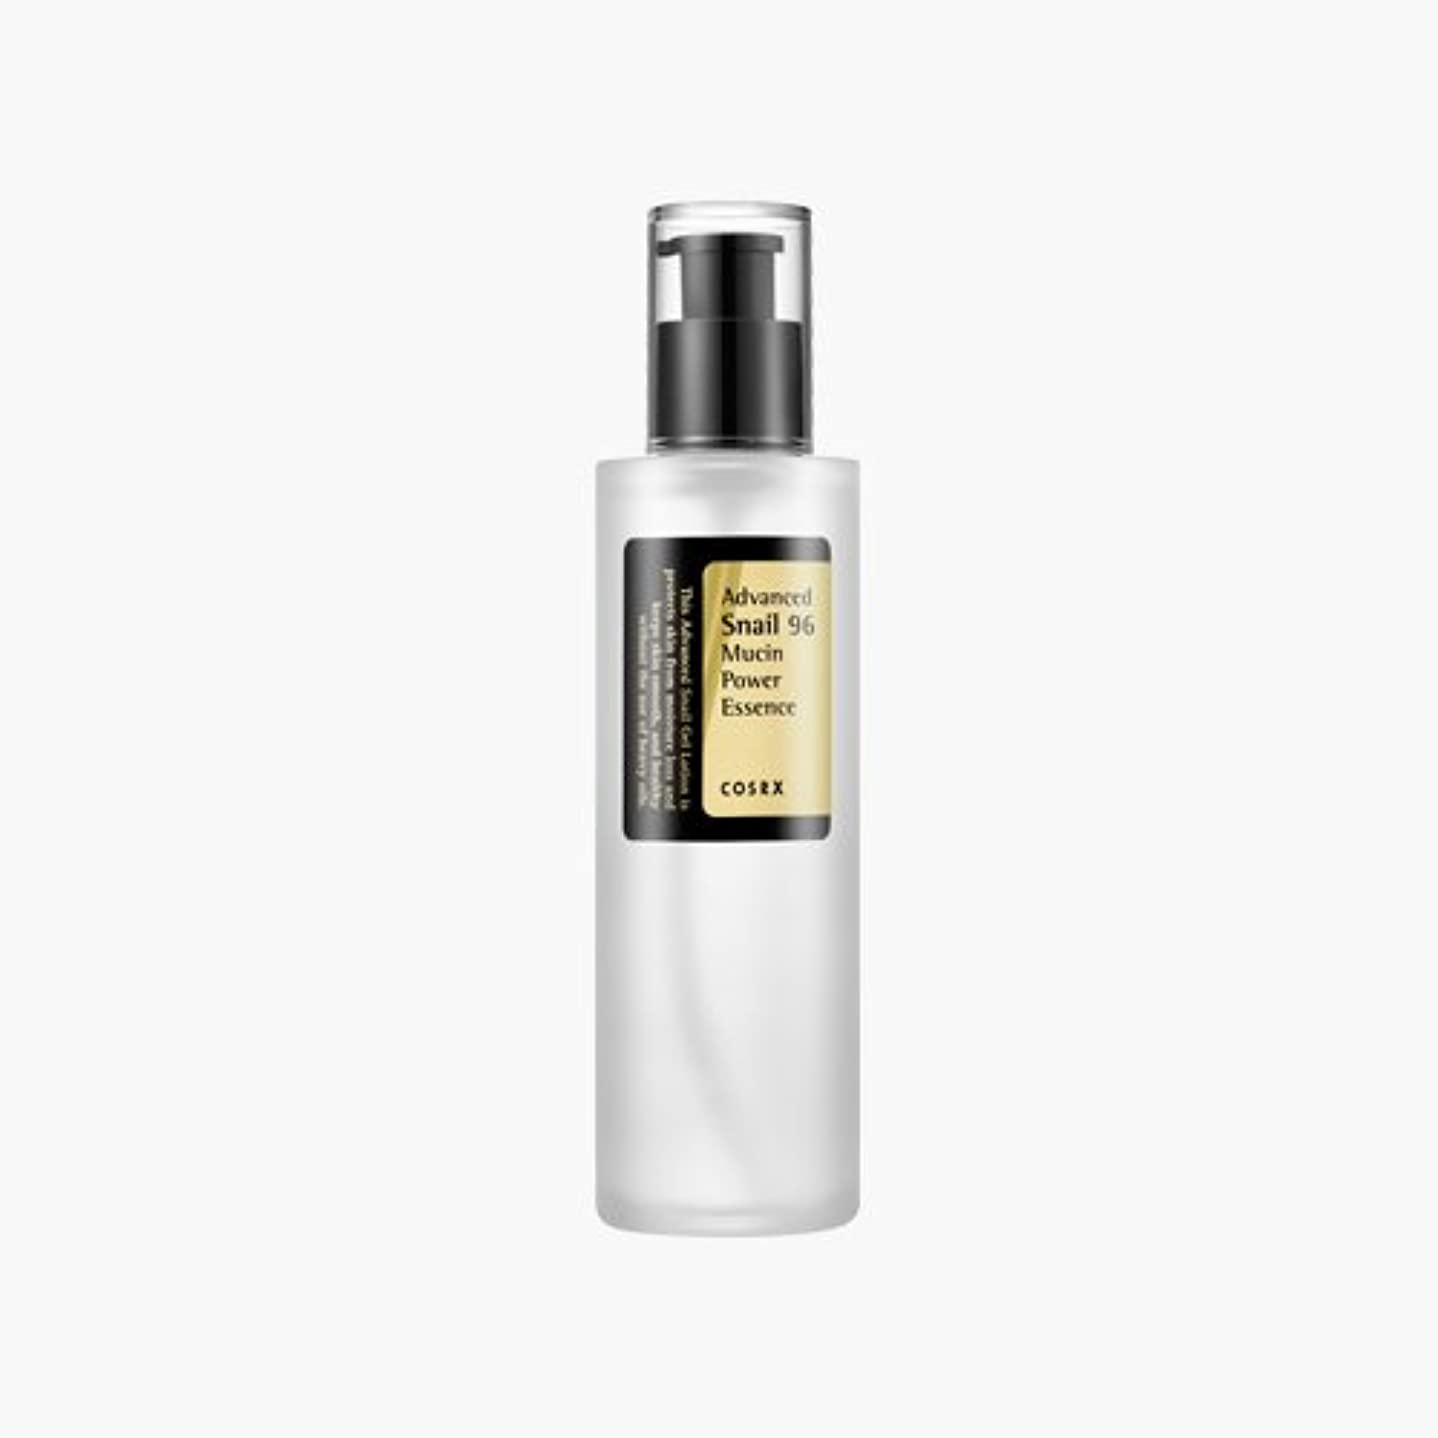 ロードハウスそれによって悲観主義者[Cosrx] Advanced Snail 96 Mucin Power Essence 100ml/K-Beauty/Korea Cosmetics